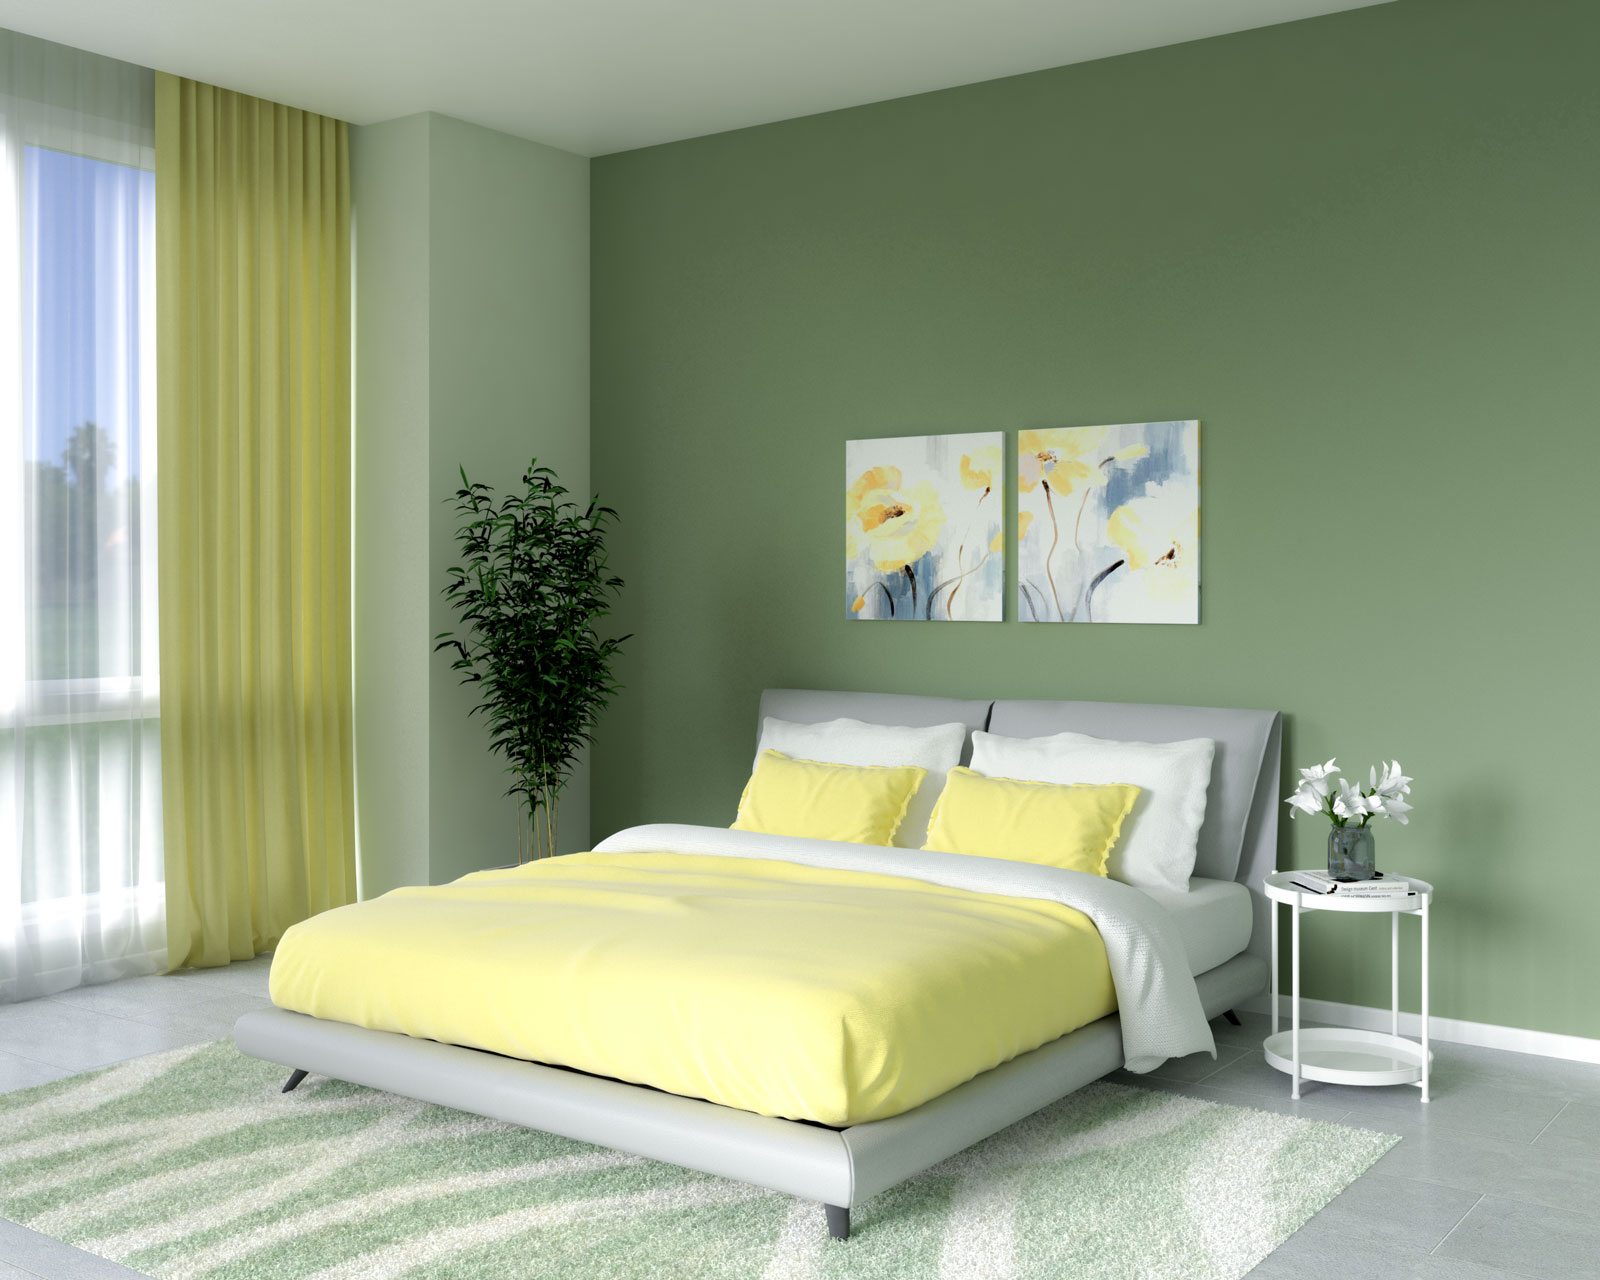 Olive bedroom with yellow bedding